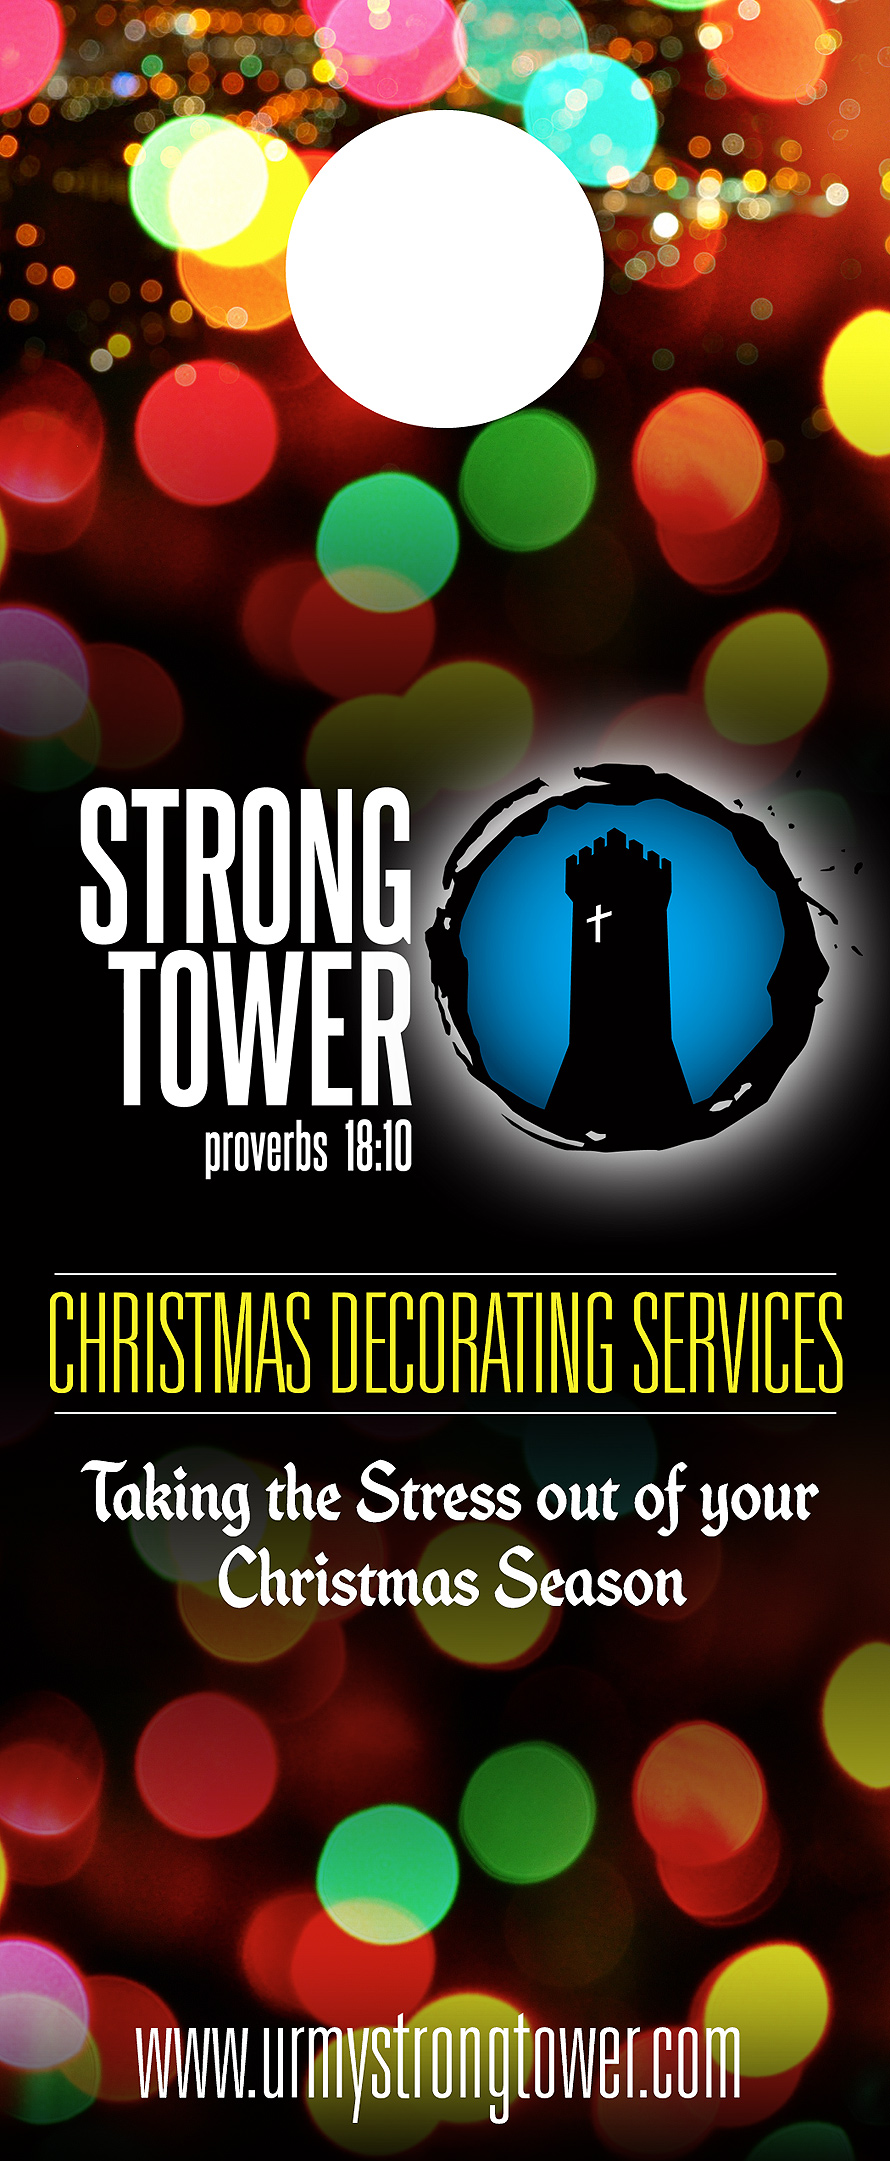 Strong Tower Christmas Decorating Services